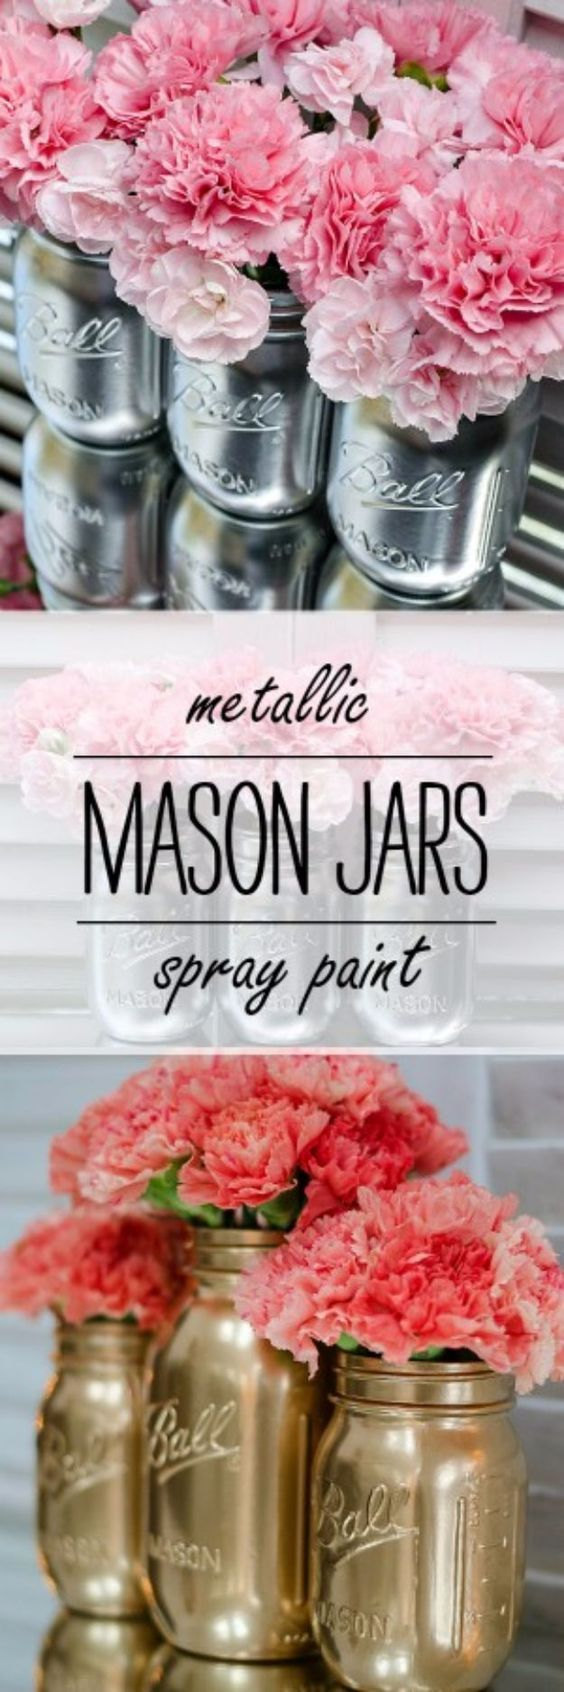 Mason Jar Party Decoration Ideas Sweet And Spicy Bacon Wrapped Chicken Tenders  Mason Jar Crafts